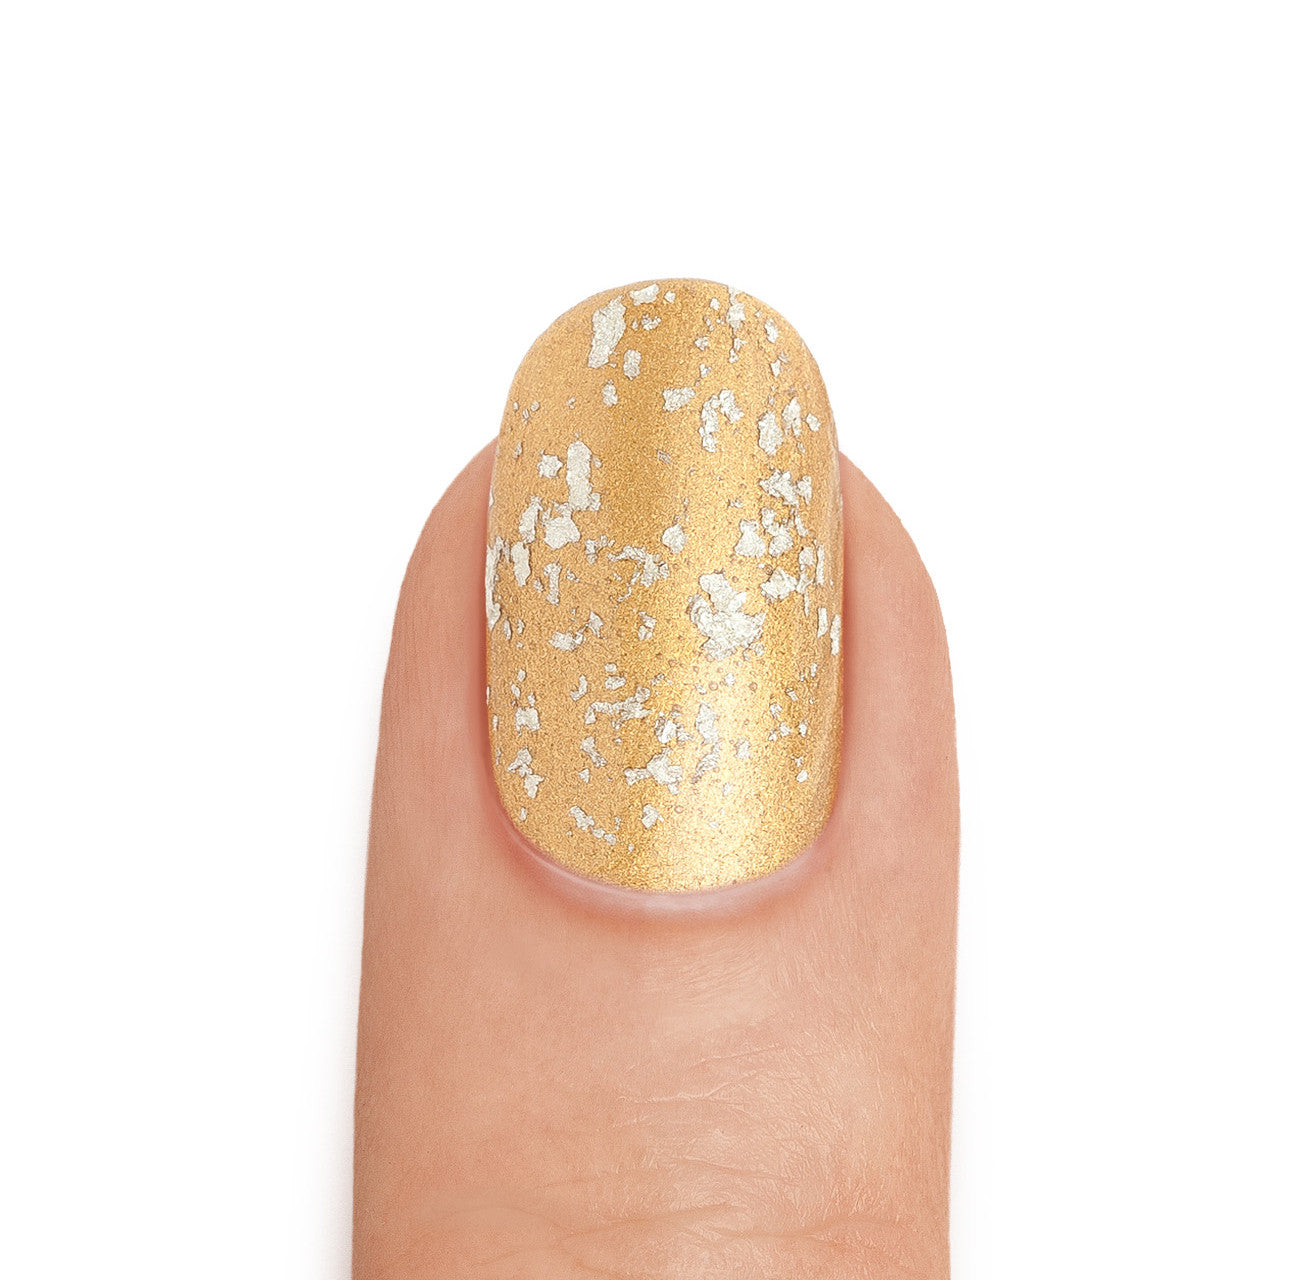 Real 24K Gold Nail Polish with White Gold Leaf Top Coat - MINE Luxury Nail Lacquer